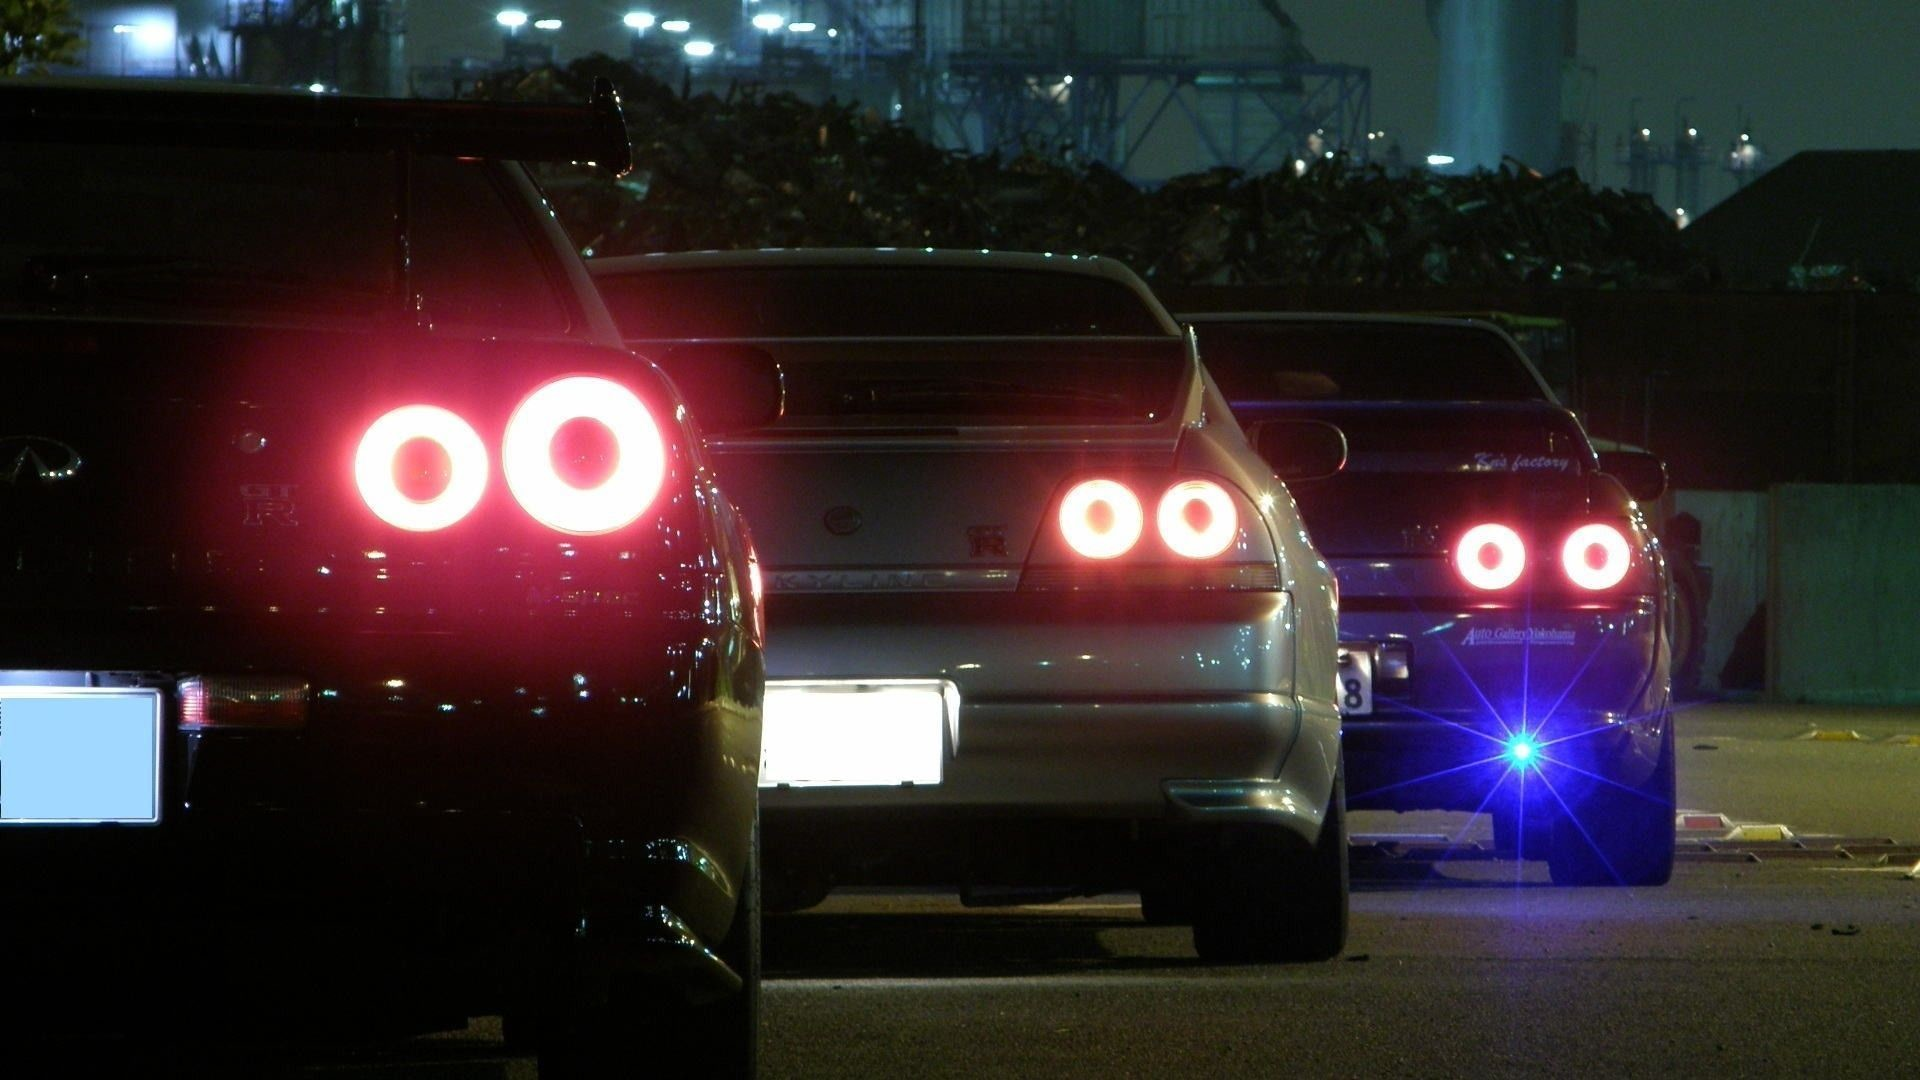 1920x1080 Cars backview vehicles nissan skyline r32 gtr jdm nissan skyline .